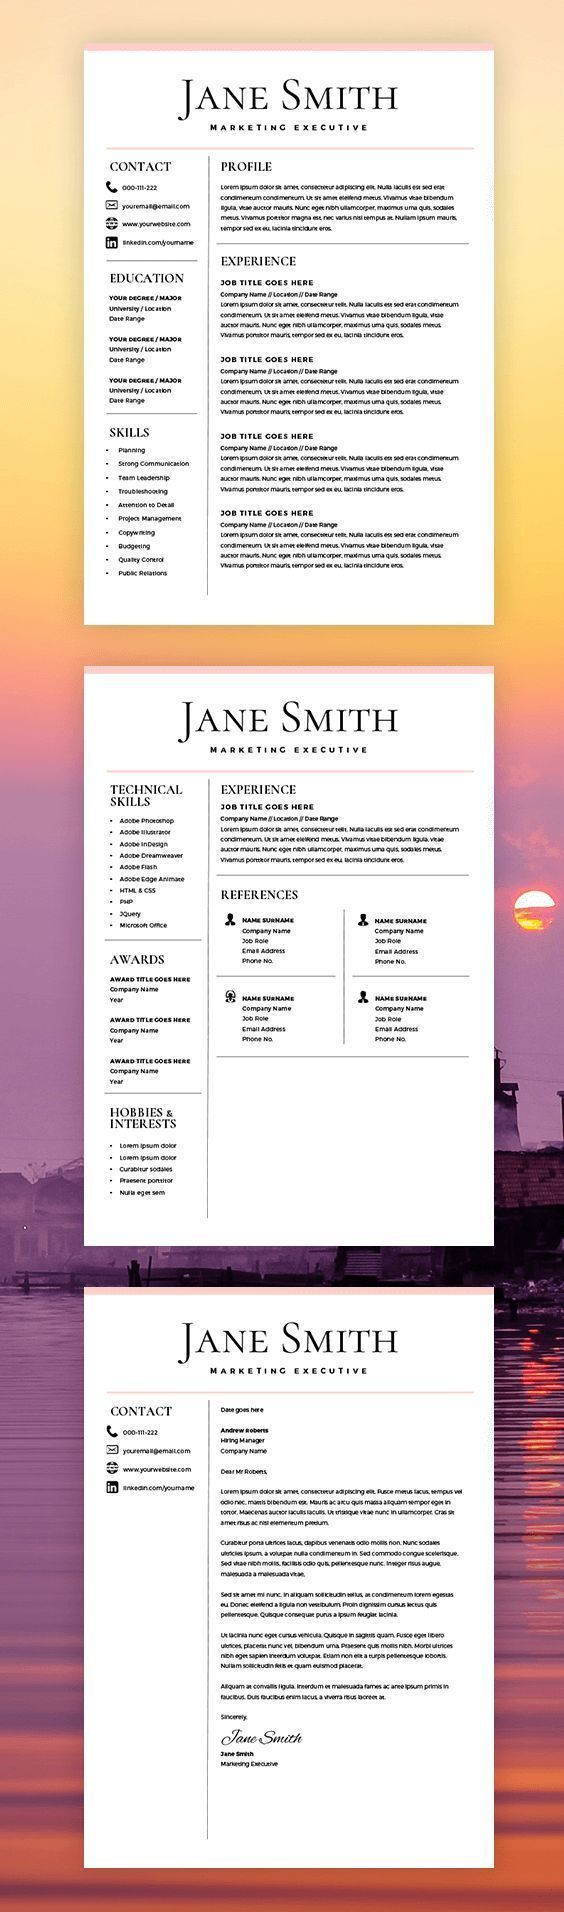 Word Cv Templates 2007%0A Resume Template  CV Template  Free Cover Letter  MS Word on Mac   PC